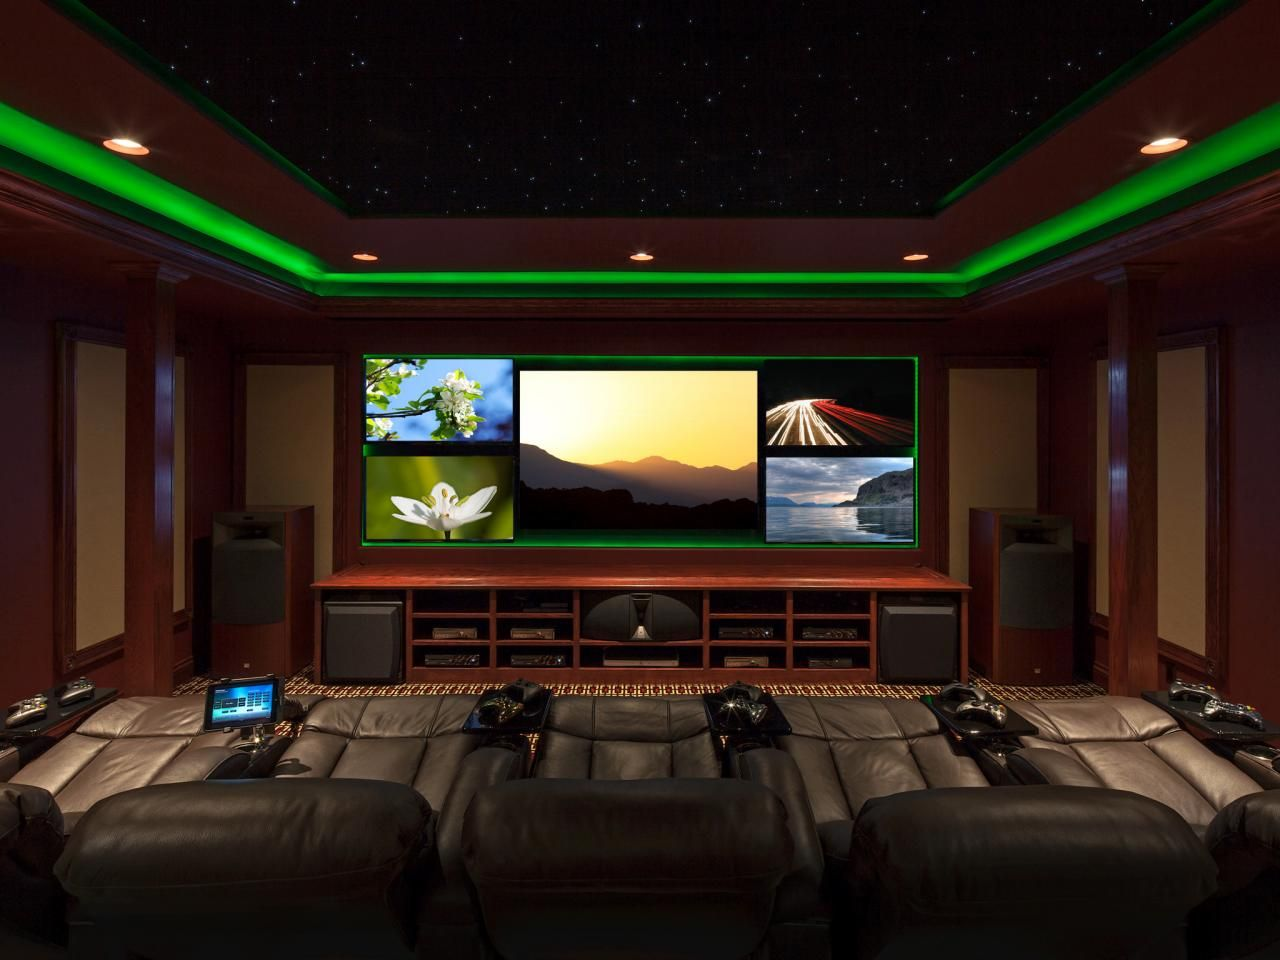 Green Ambient R Room Lighting In 2019 Video Rooms